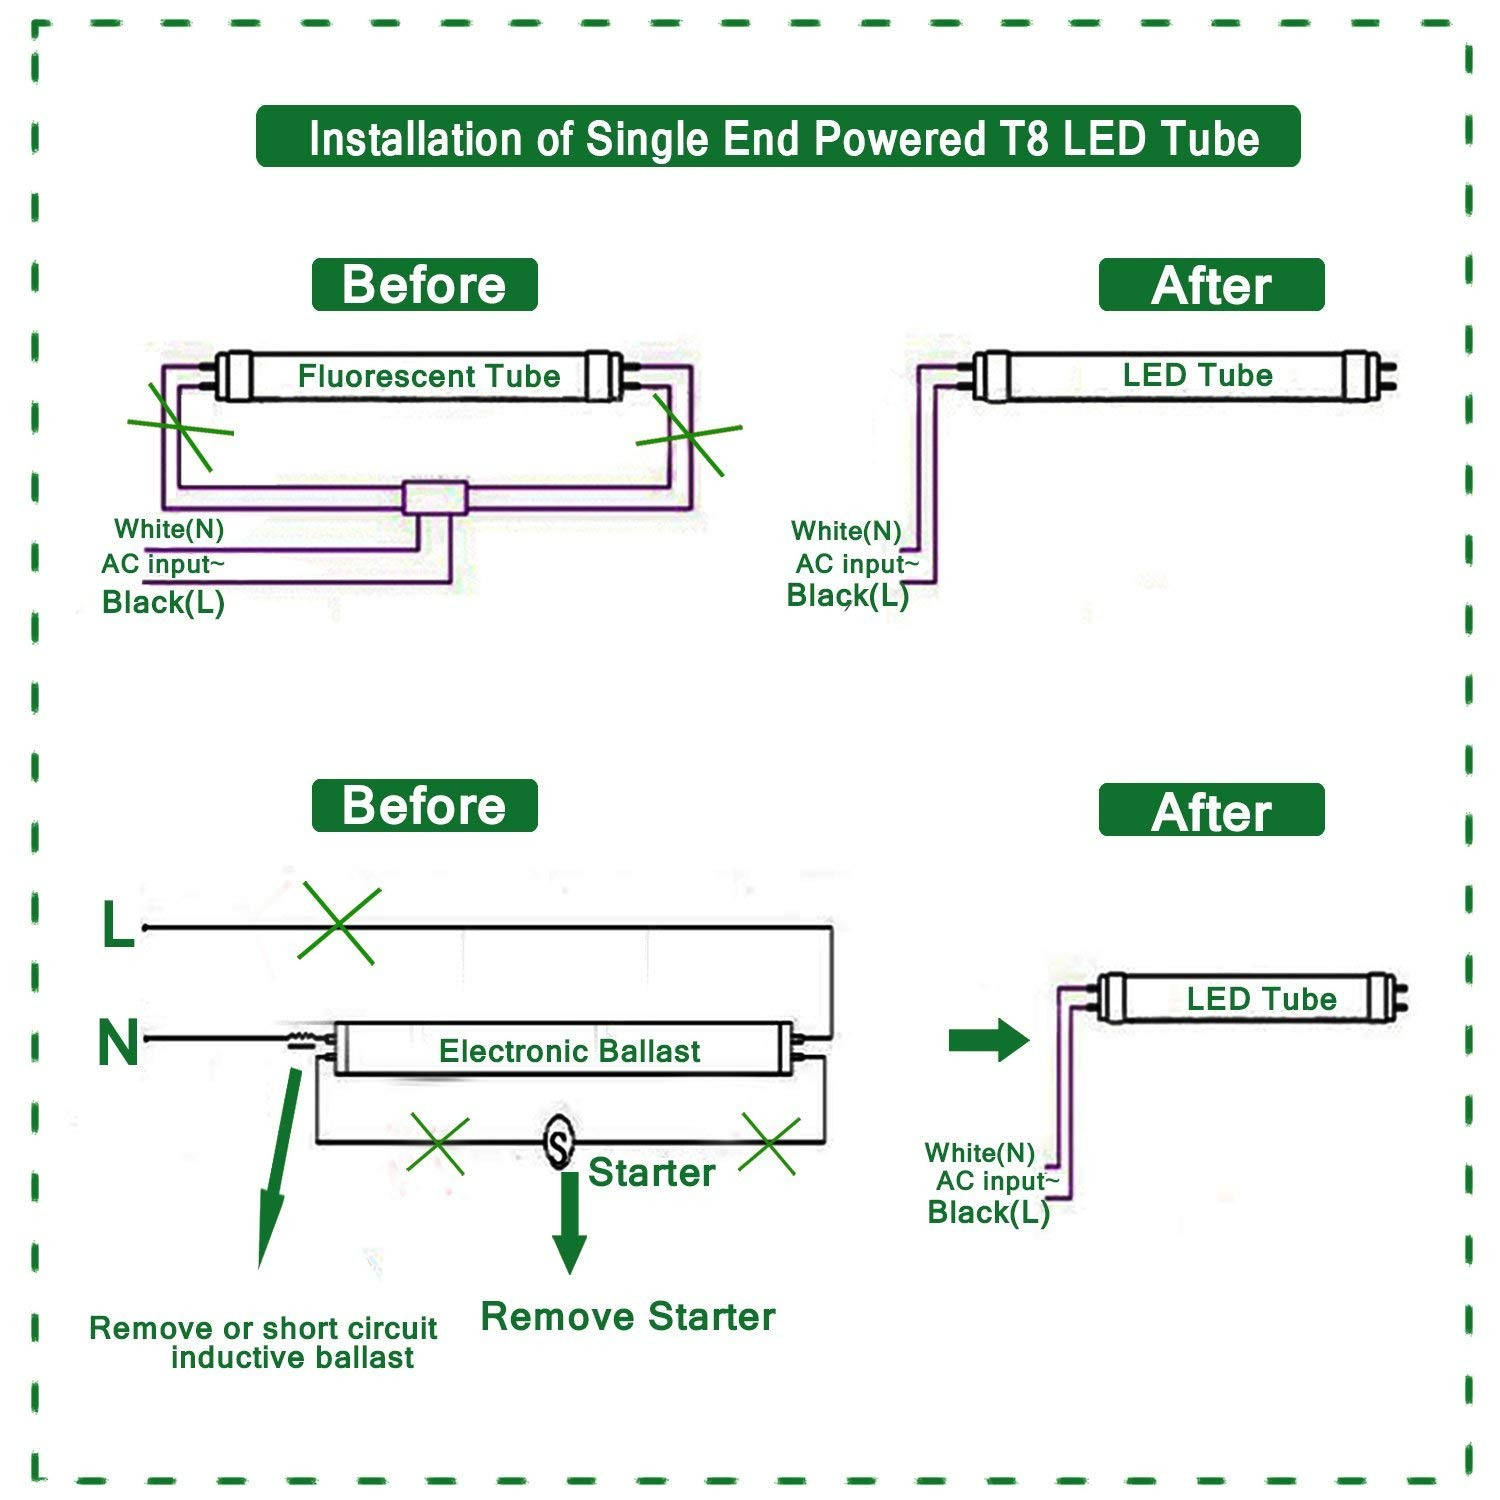 wiring diagram for led tube lights Collection-Fluro Light Wiring Diagram Australia Save Wiring Diagram Led Tube Philips Refrence T8 Led Tube Wiring 10-d